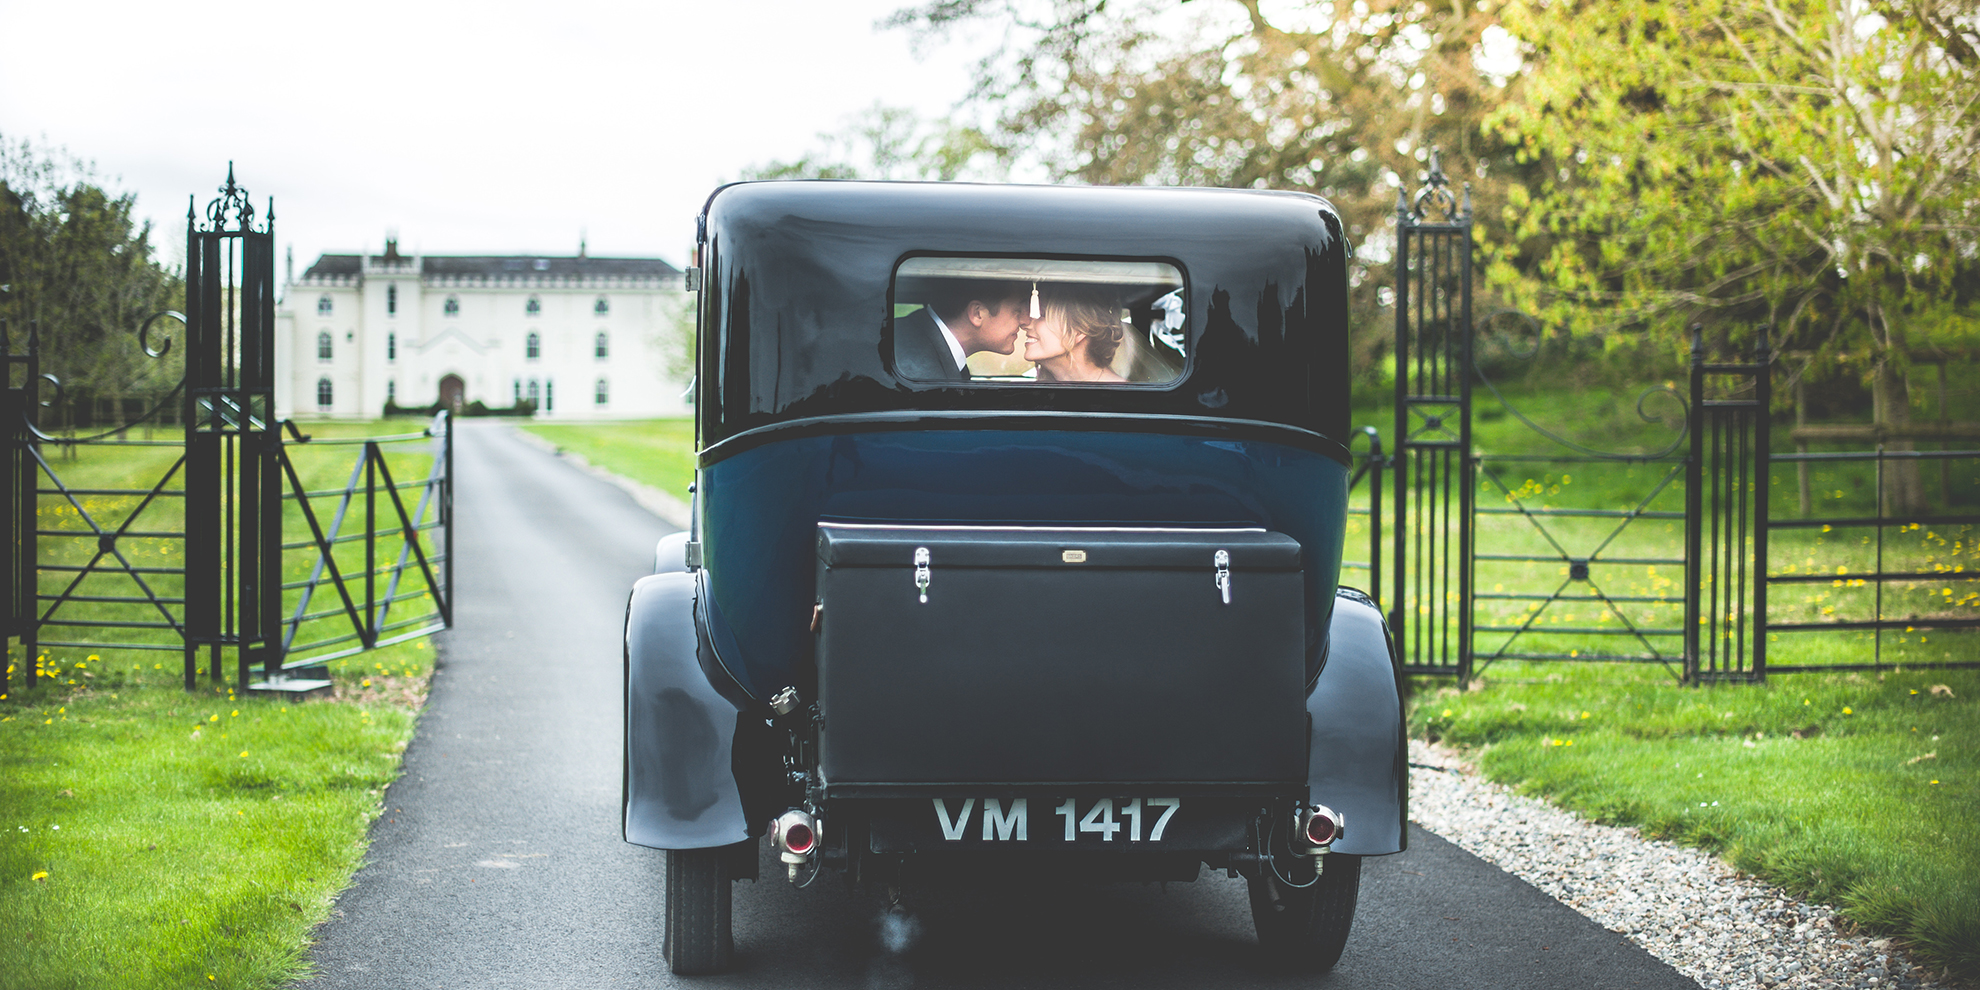 The bride and groom are driven to the North Wing at Combermere Abbey in a vintage wedding car